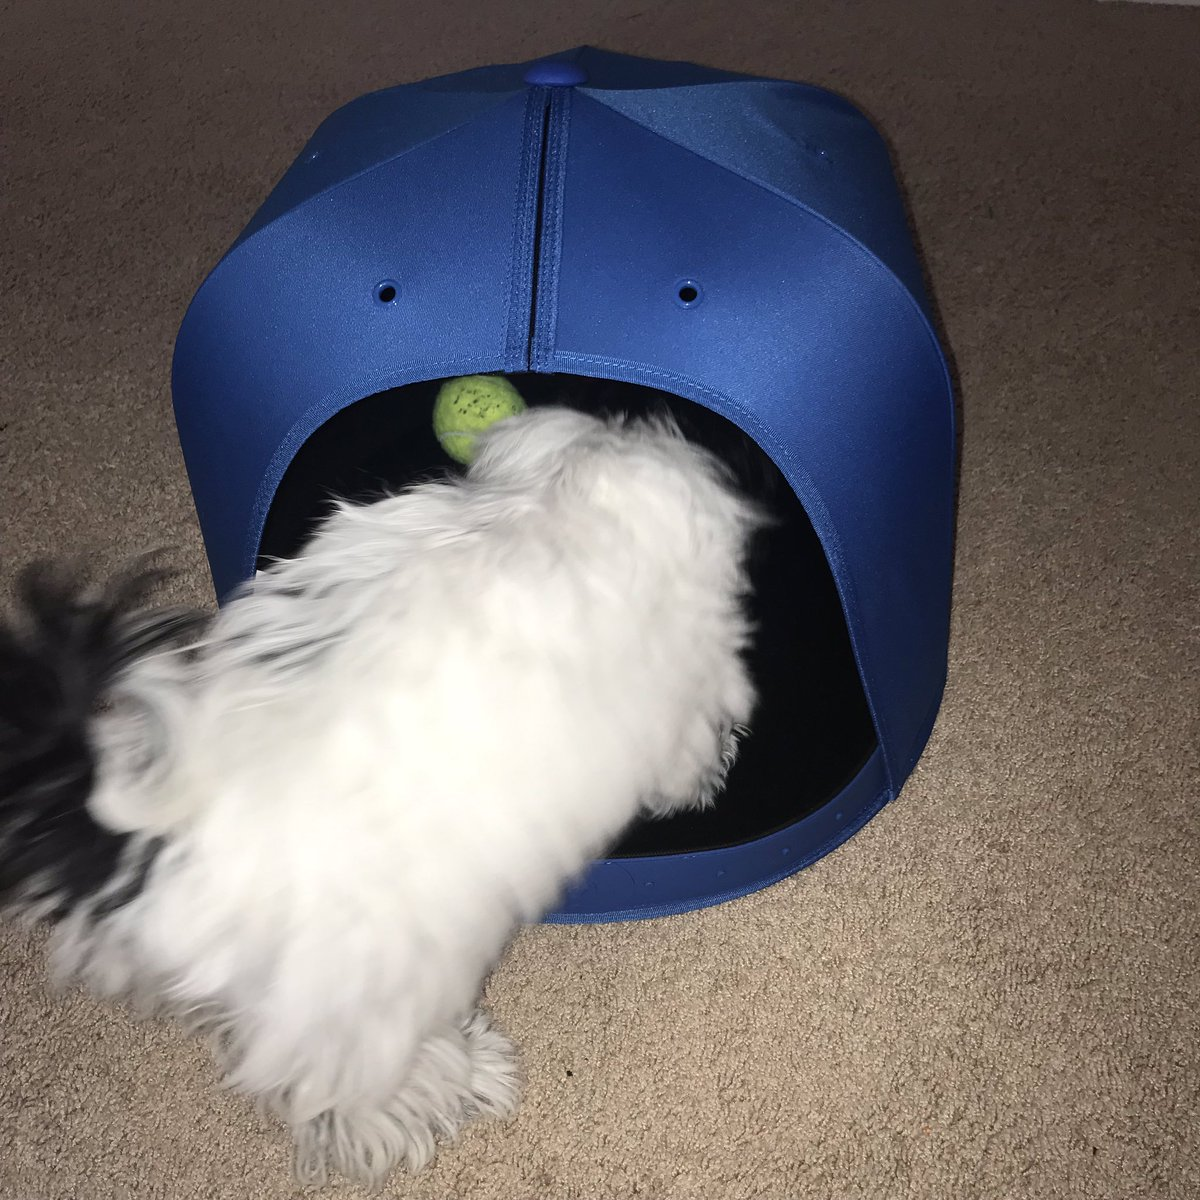 b3282f36f129bb ... my daughter's dog Pandora needed a NBA getaway and you know what she  loves it! Thanks @_napcap this is really a cool invention for pets. Yoda  approves!